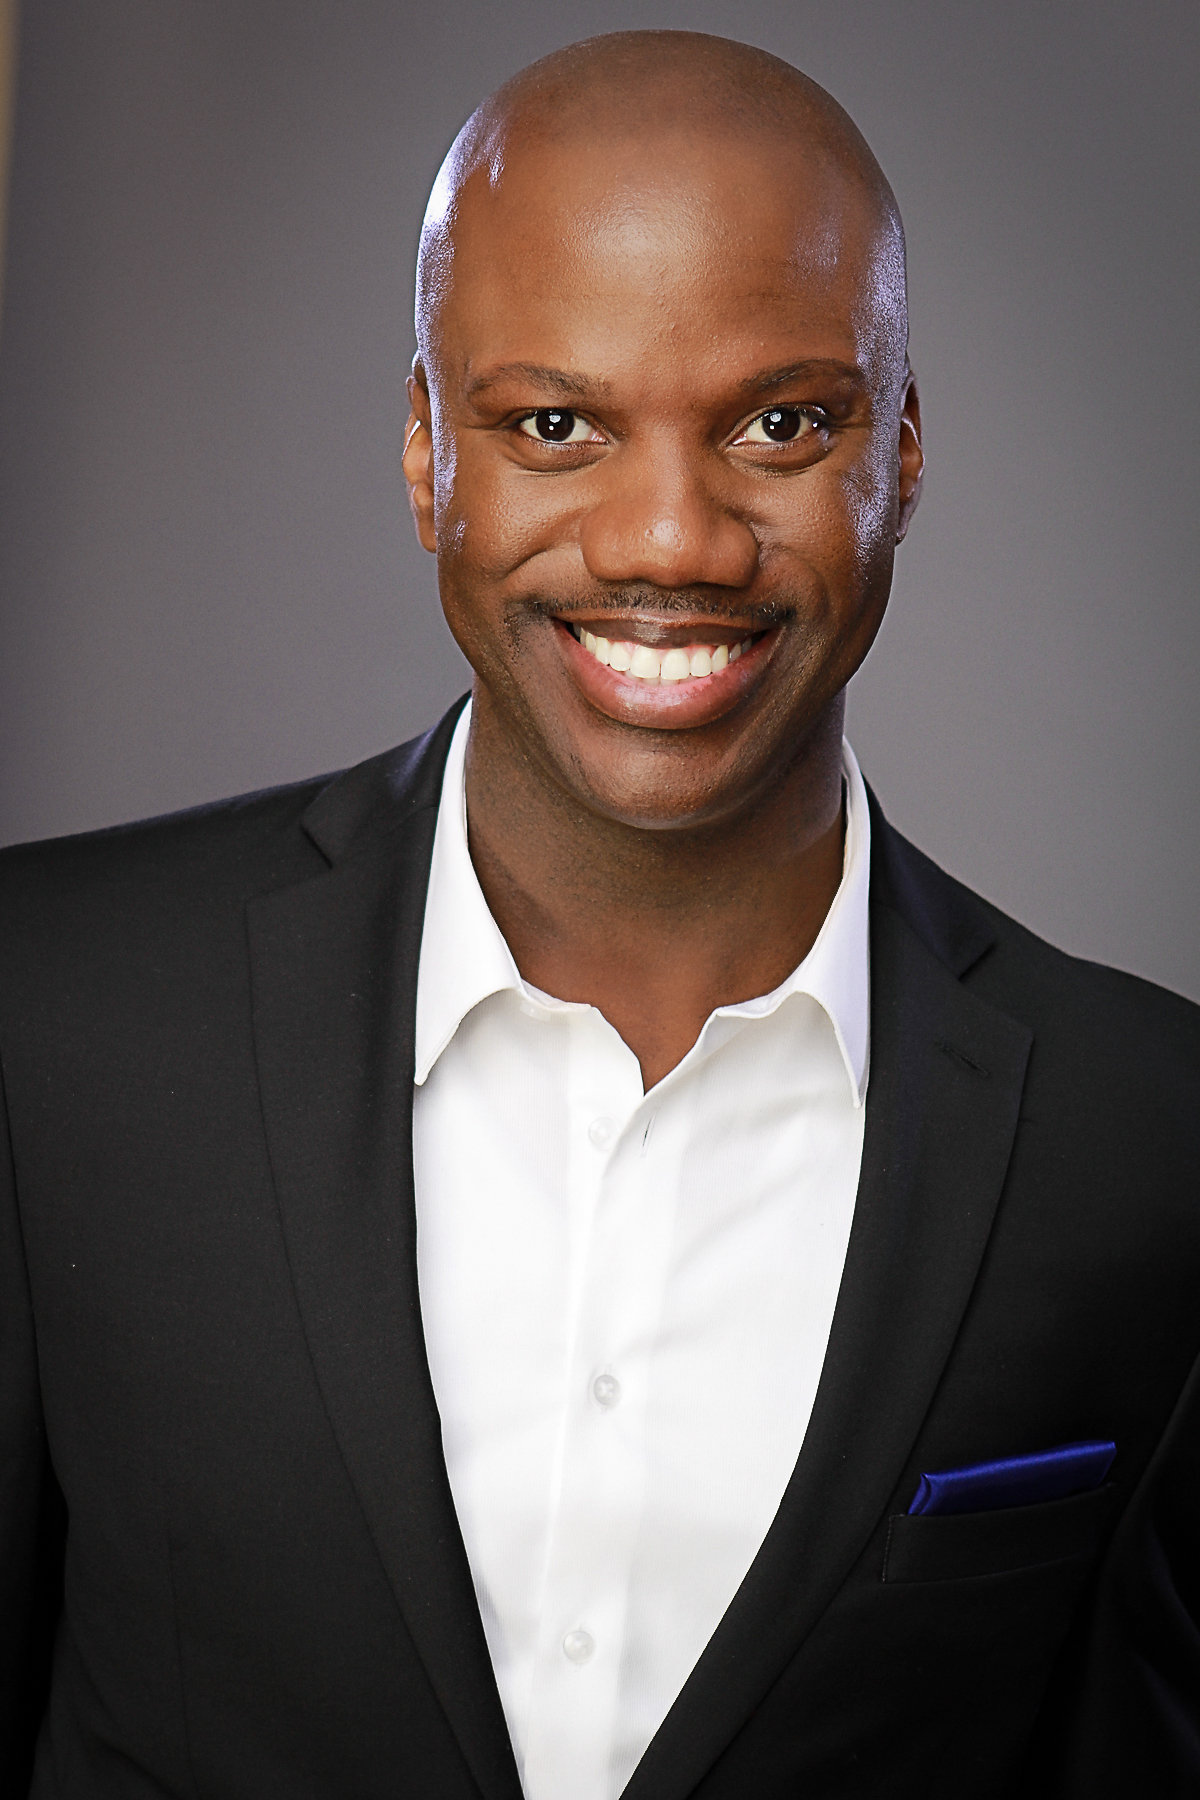 Shaun Harper will speak at Duke's 2016 MLK event.